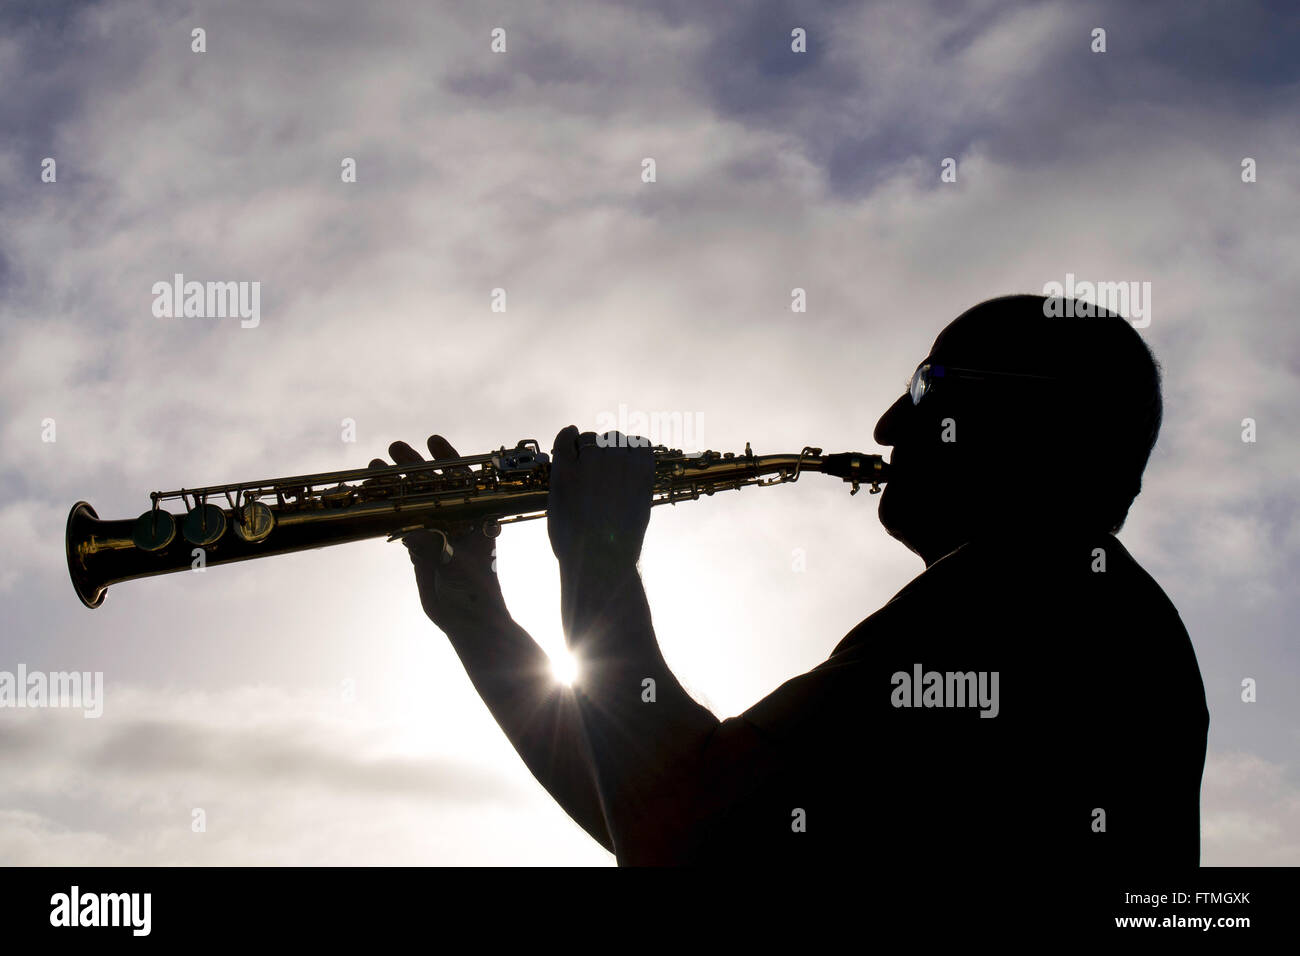 Official 2a,a of machines playing his sax on the ship Maisa - Stock Image